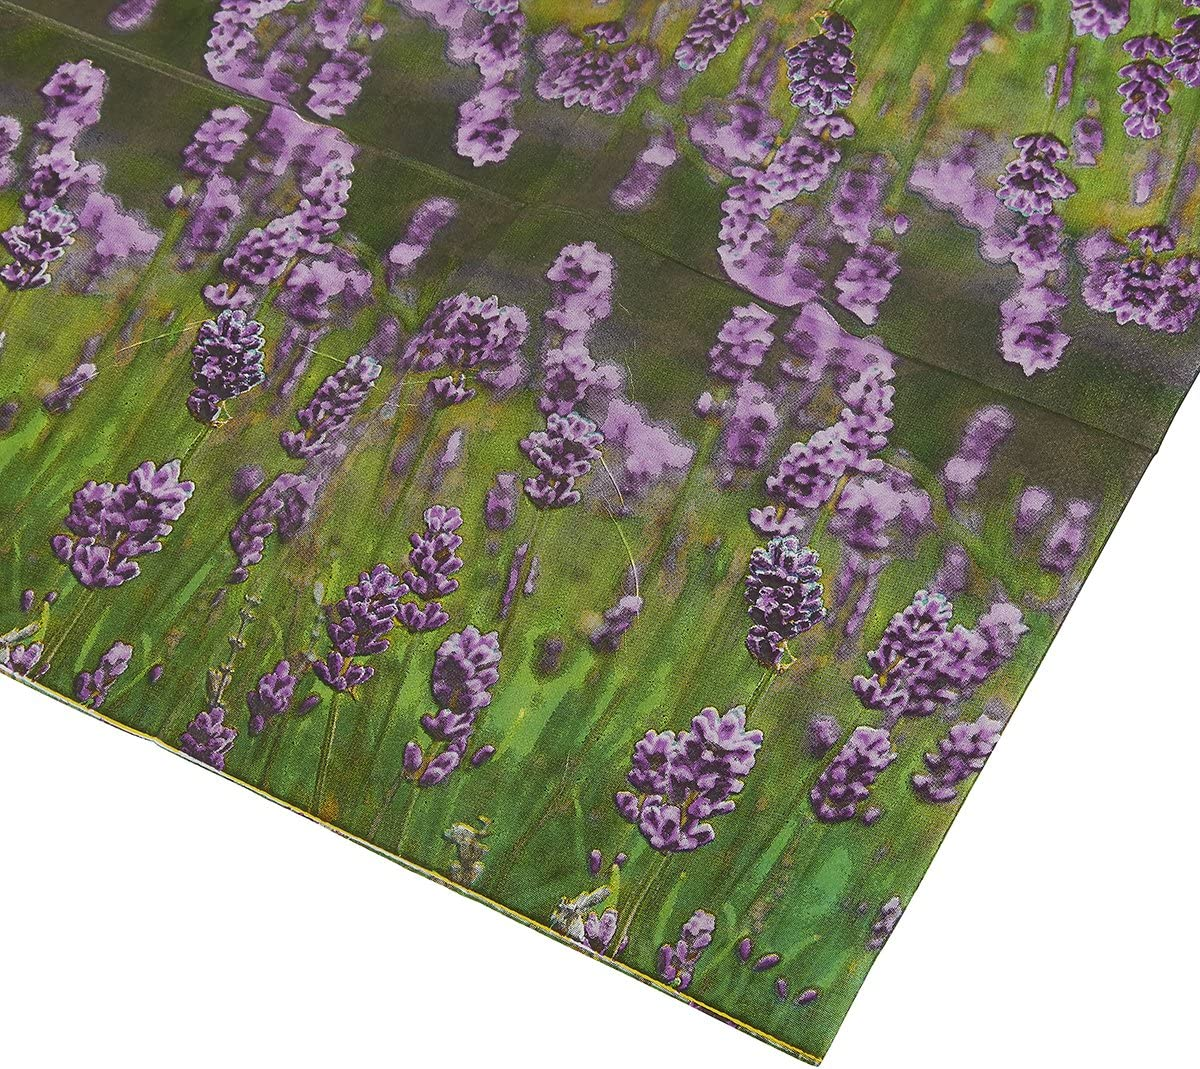 33 x 33 Centimetres Perfect for Birthday Parties Celebrations and Special Occasions Disposable Paper Party Napkins with Lavender Designs Juvale 100-Pack Decorative Napkins